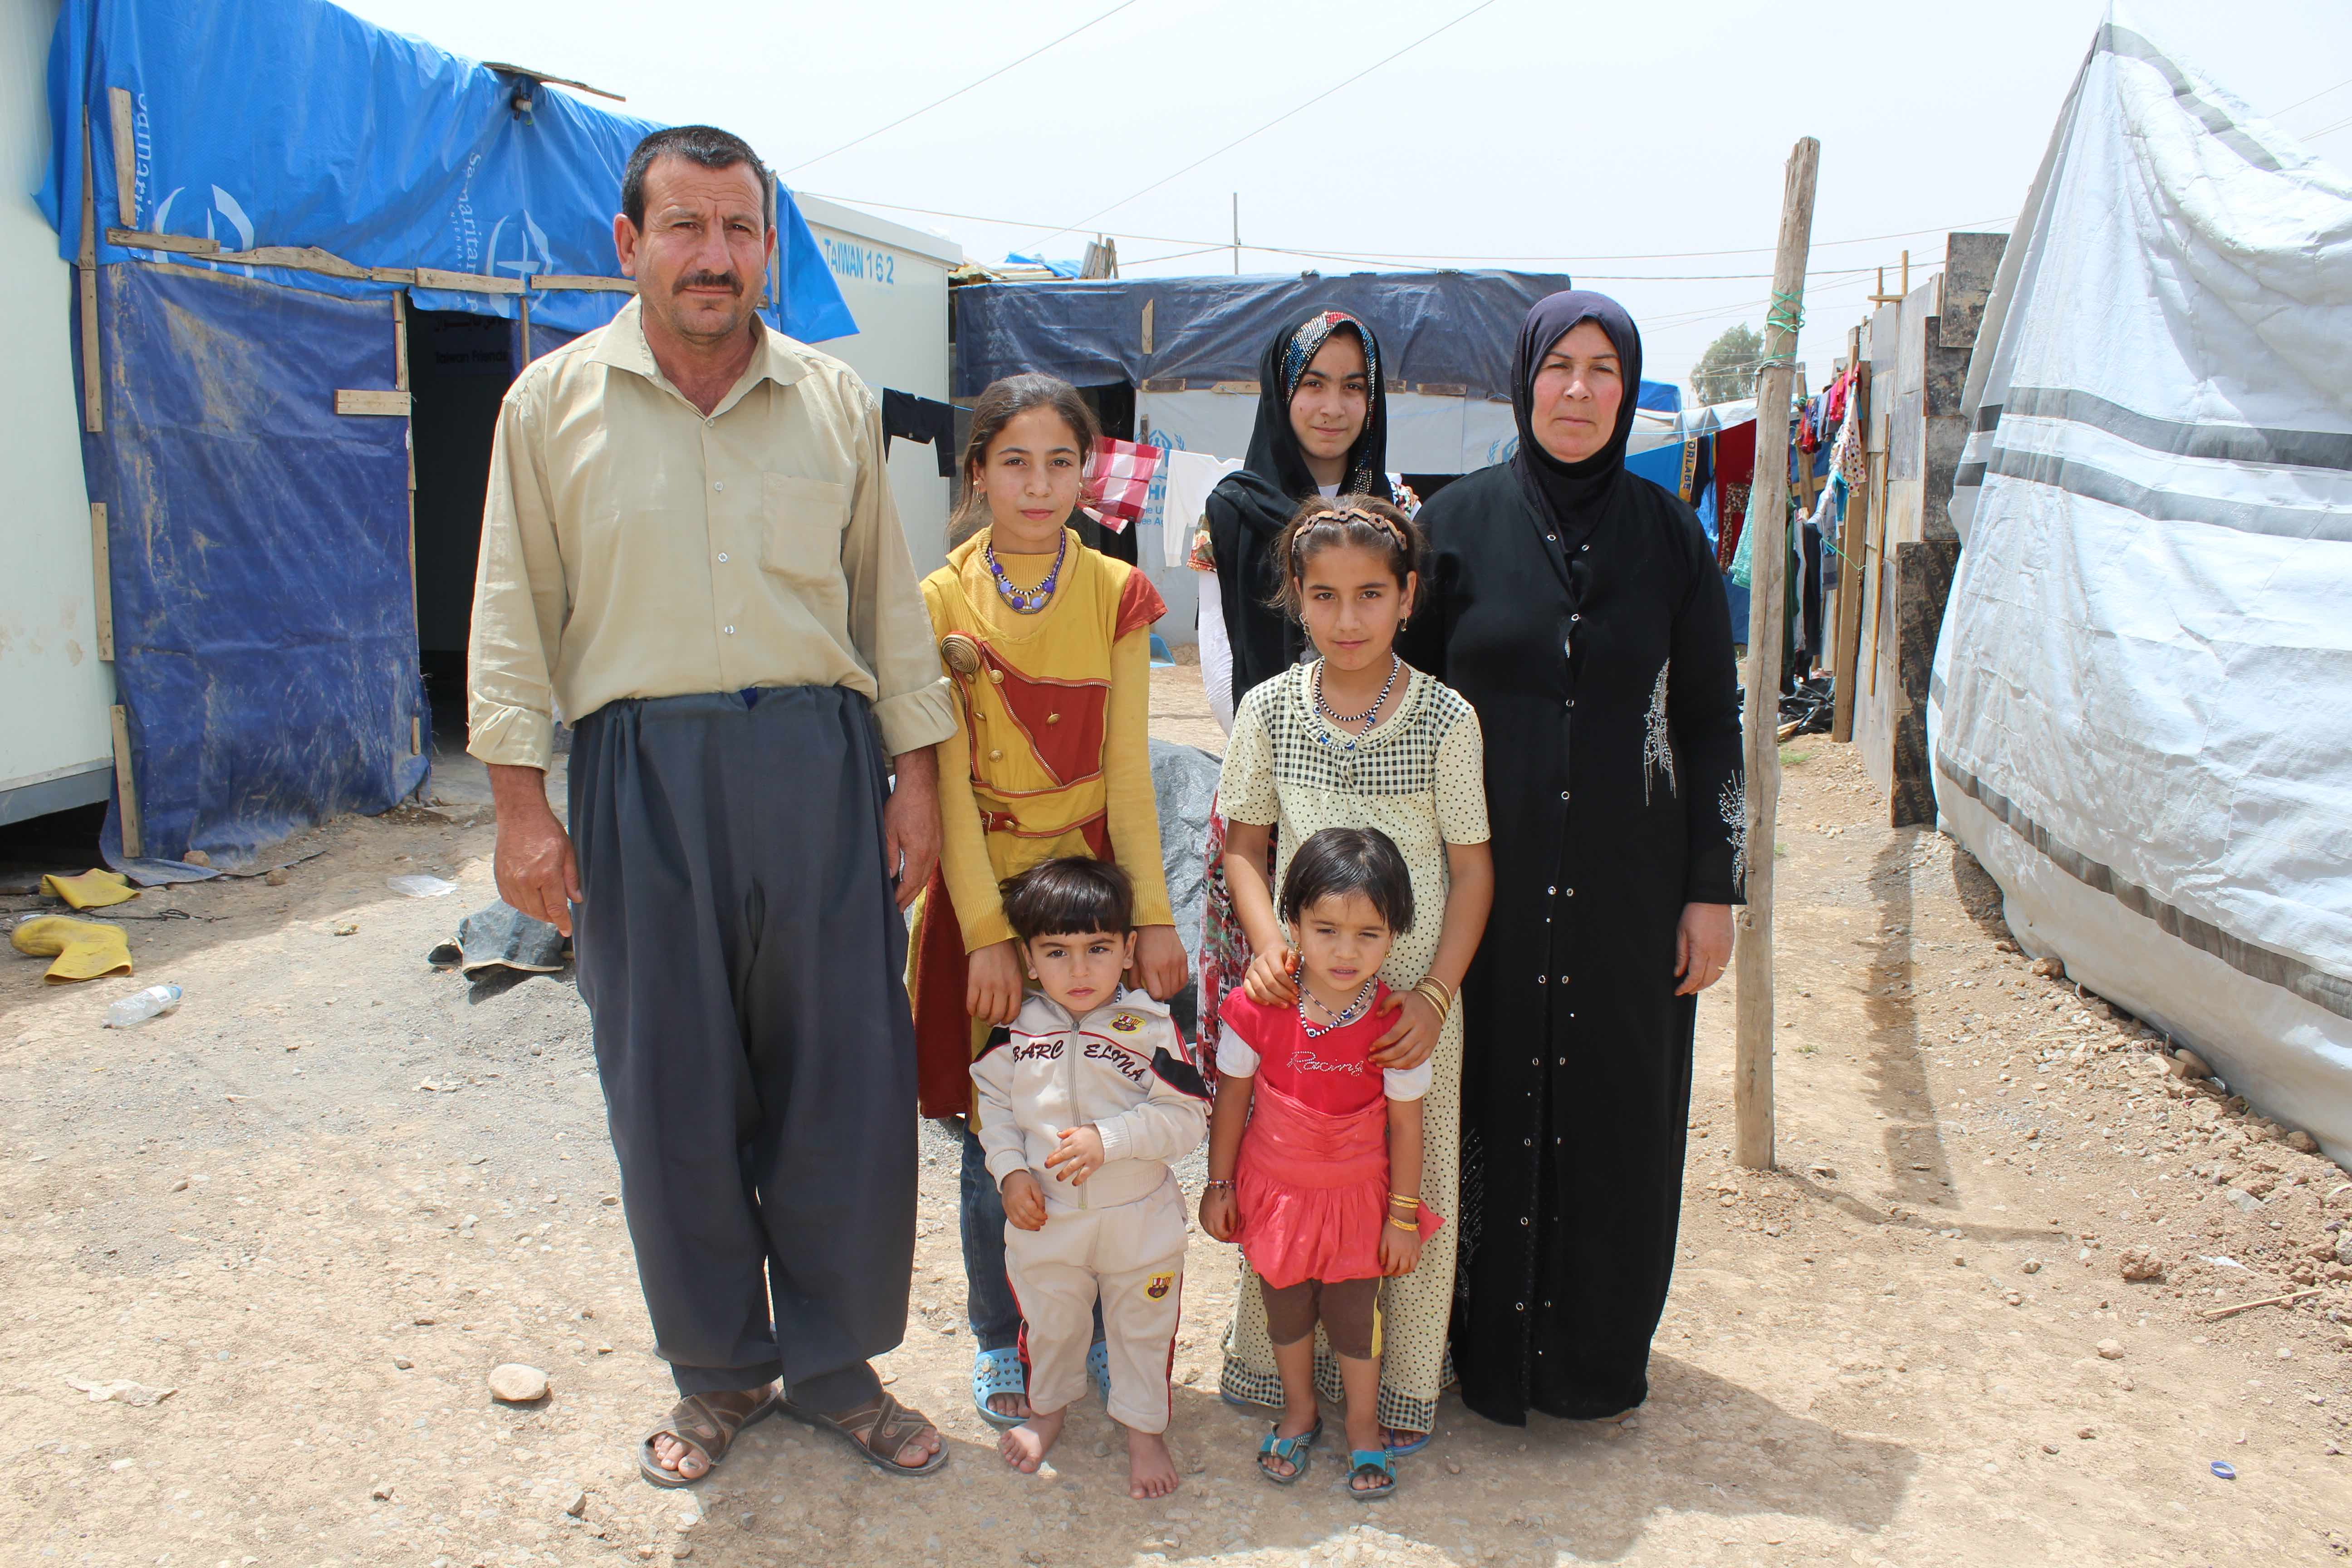 Walid, a 46-year-old handyman from Bartella, a small town on the outskirts of Mosul. He lives in Harshm IDP camp in Erbil, Kurdistan. Pictured here with his two sons and four daughters. Other family members live nearby in the camp. The family is Shia Shab